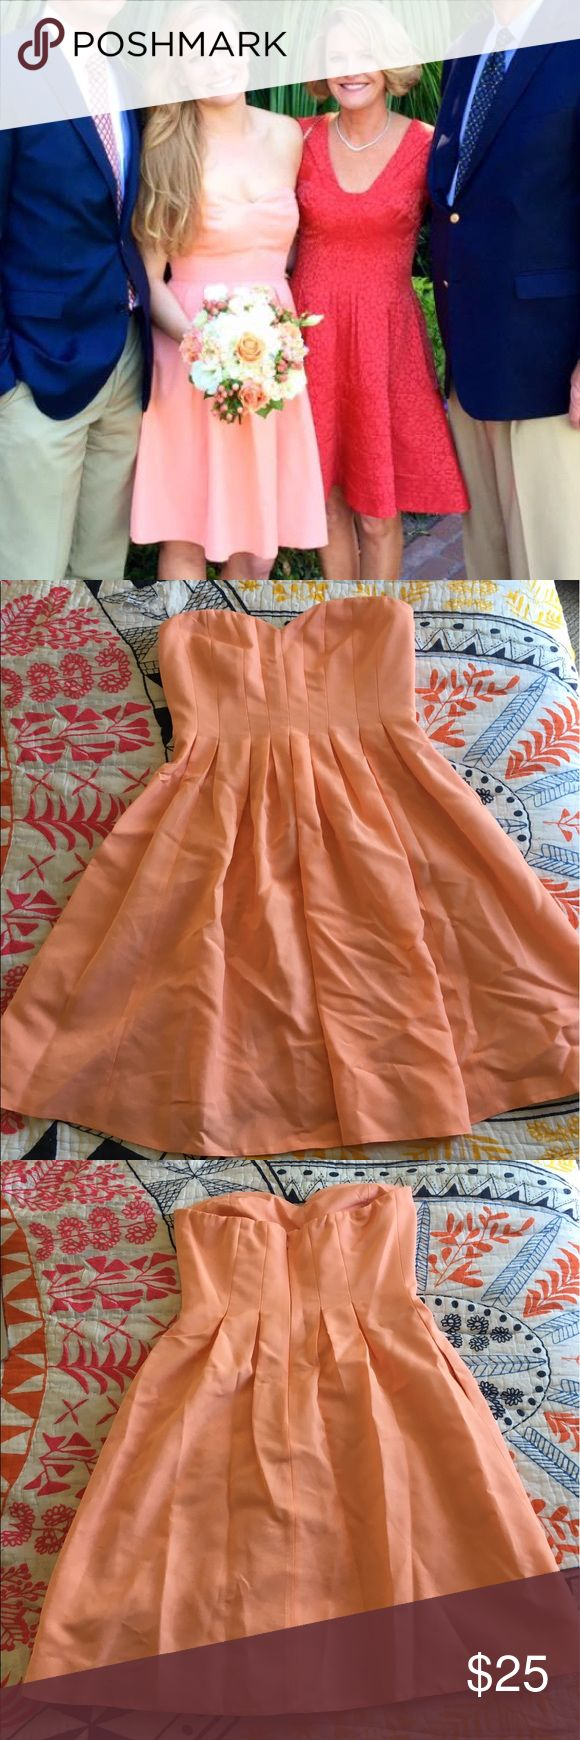 Jcrew Coral strapless dress Super cute worn one time salmon/coral dress super unique has pockets can wear multiple times I were as a bridesmaid gown J. Crew Dresses Mini